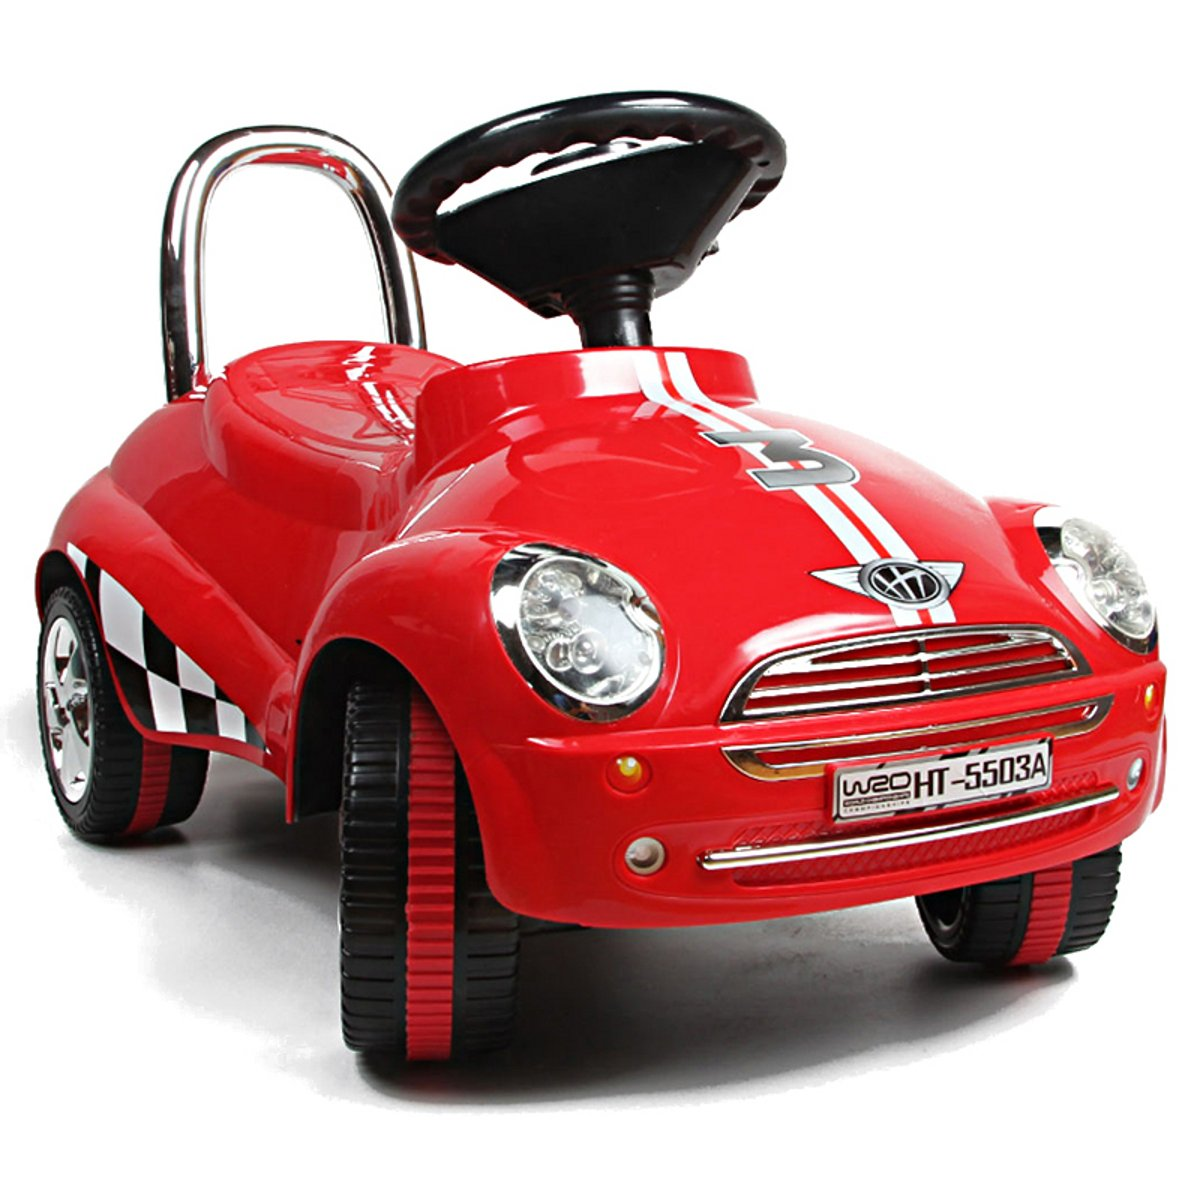 Red Ride On Car Toy Gliding Scooter with Sound Light by Unknown